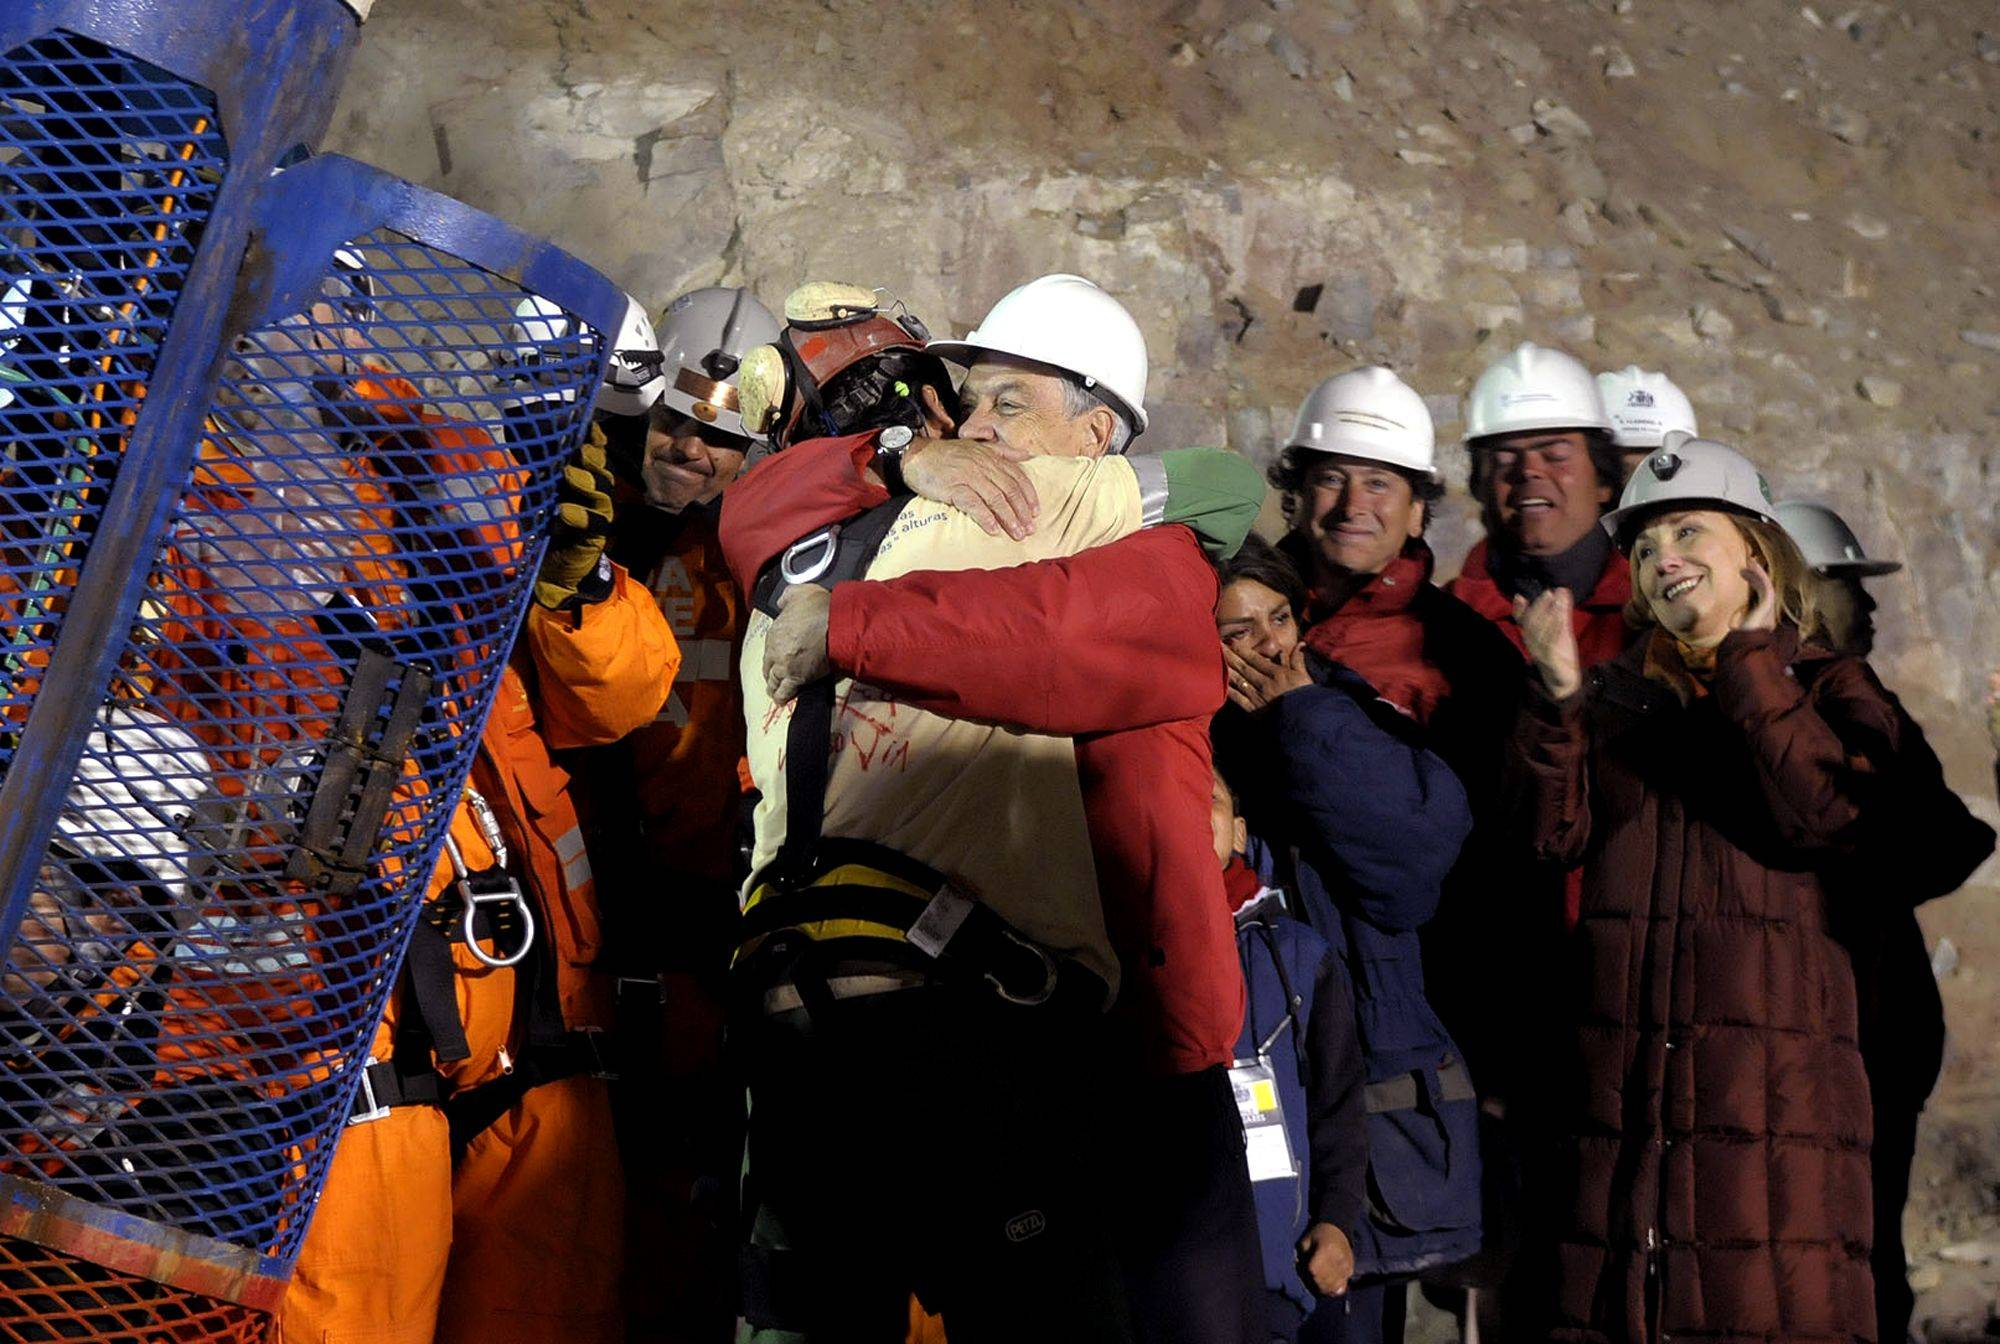 In this photo released by the Chilean presidential press office, Chile's President Sebastian Pinera, front right, hugs rescued miner Florencio Avalos after Avalos was rescued from the collapsed San Jose gold and copper mine where he was trapped with 32 other miners for over two months near Copiapo, Chile, Tuesday Oct. 12, 2010.